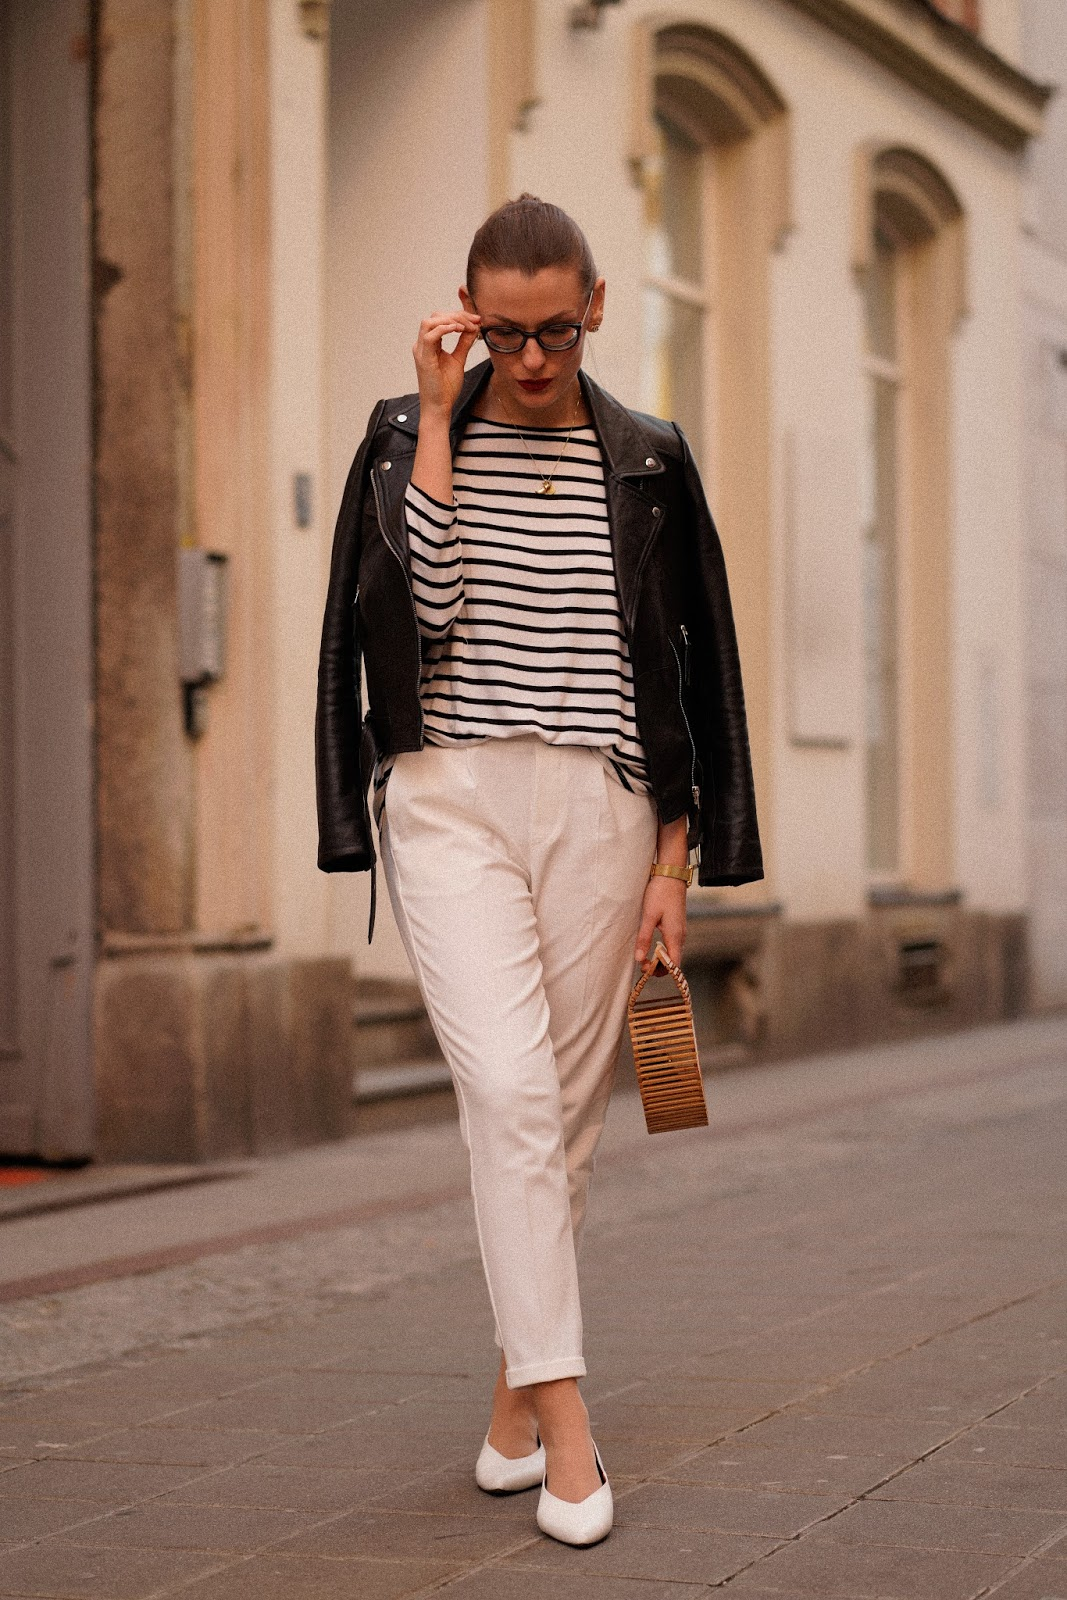 EVERYDAY UNIFORM: The Casual Style